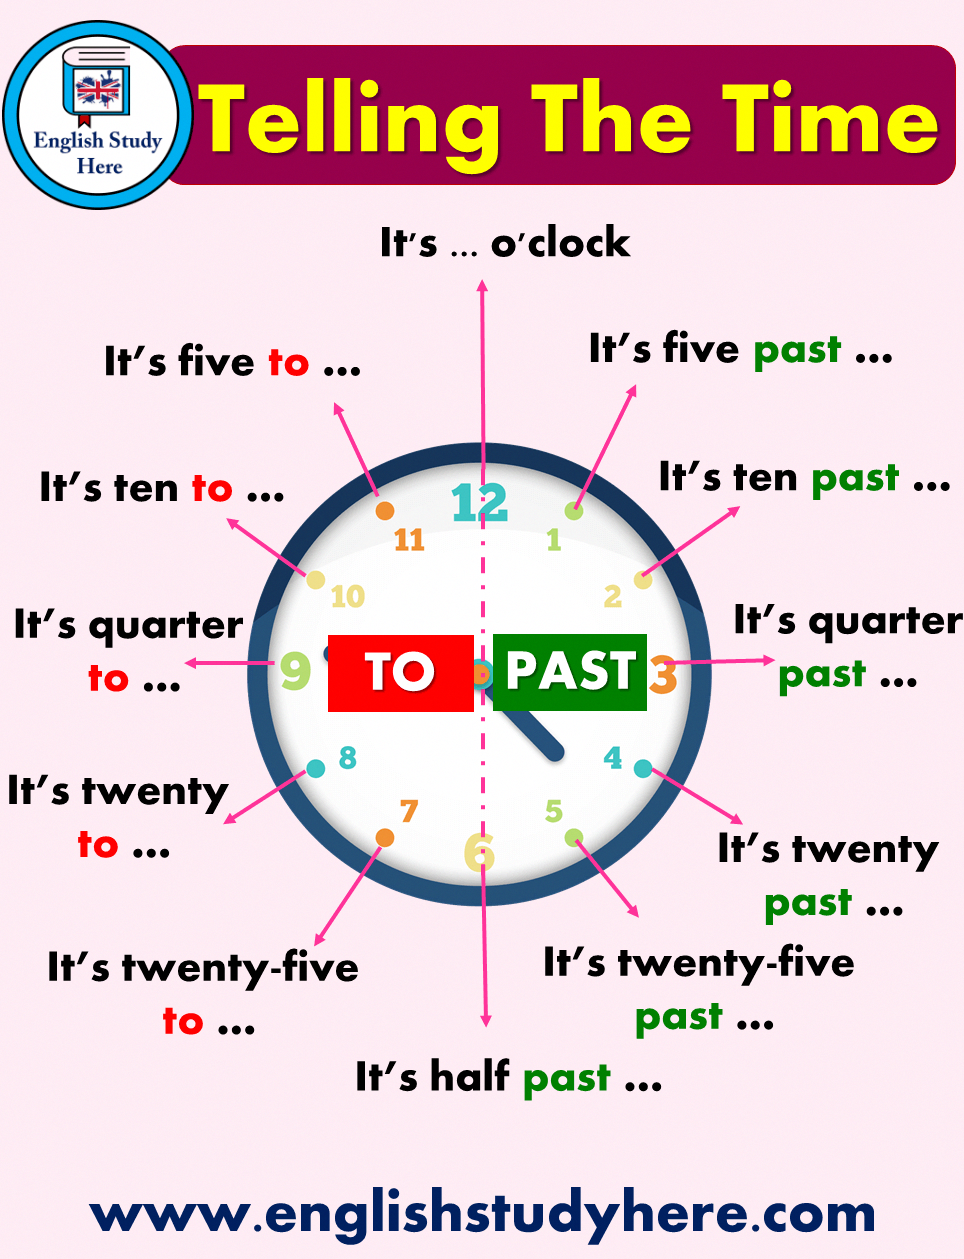 How To Say The Time In English English Study Here Apprendreanglais Apprendreanglaisenfant Anglaisfacile Cour Apprendre L Anglais Vocabulaire Anglais Anglais